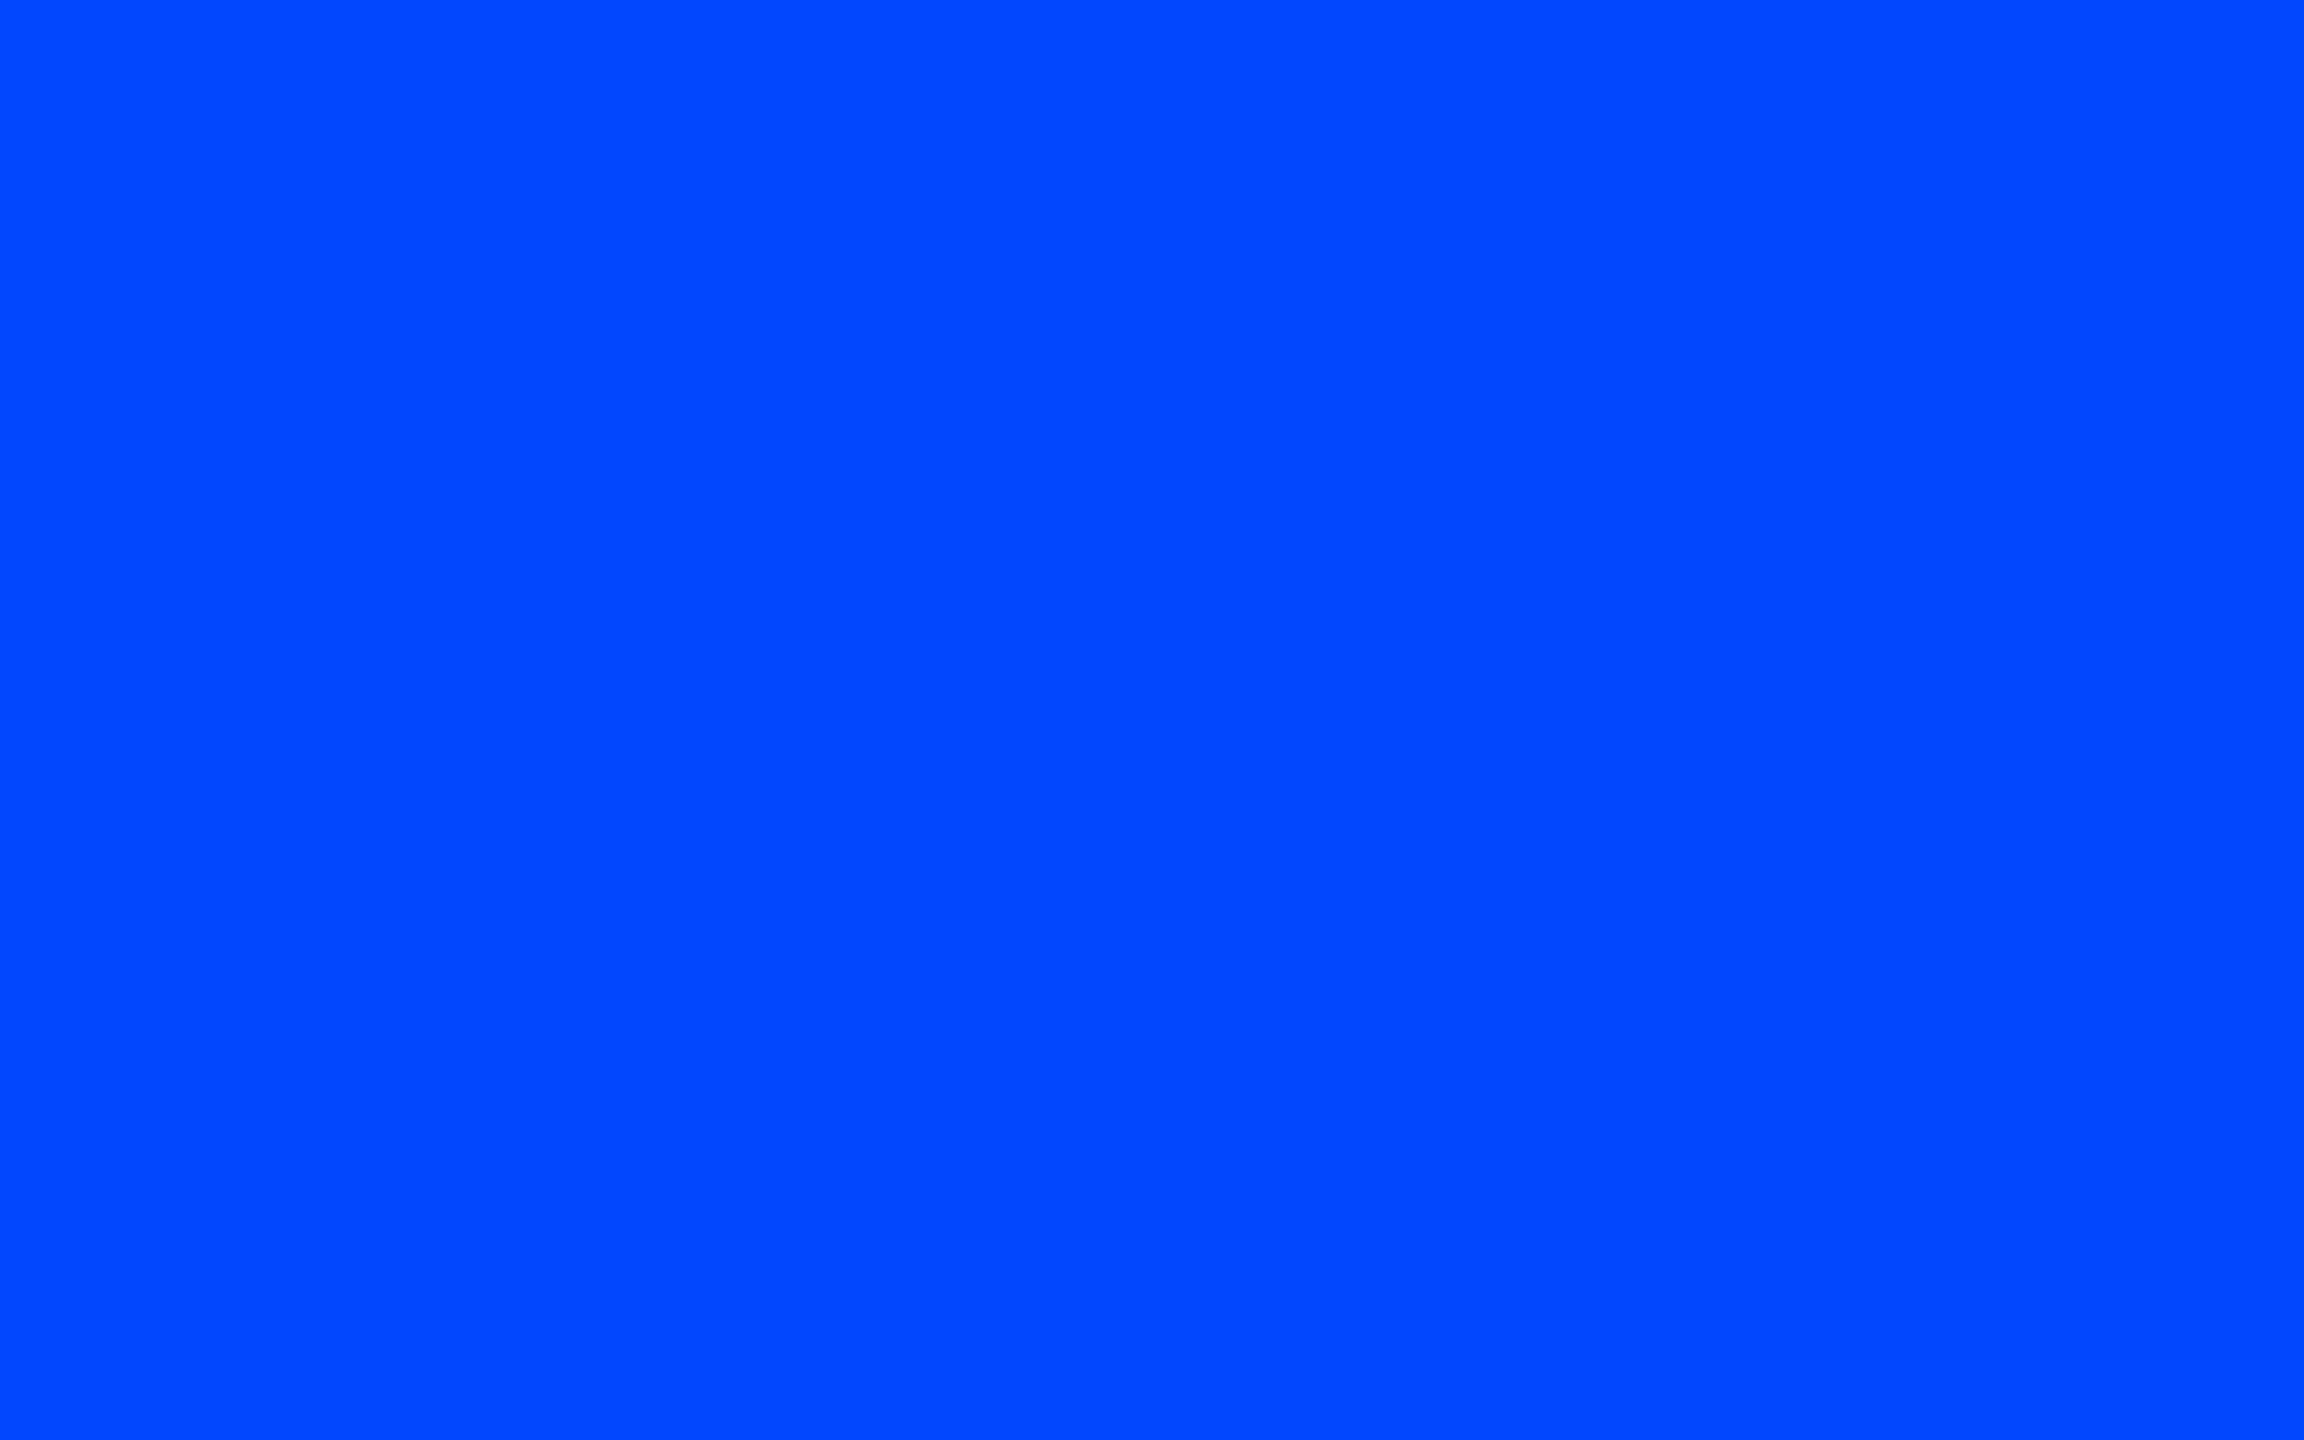 2304x1440 Blue RYB Solid Color Background